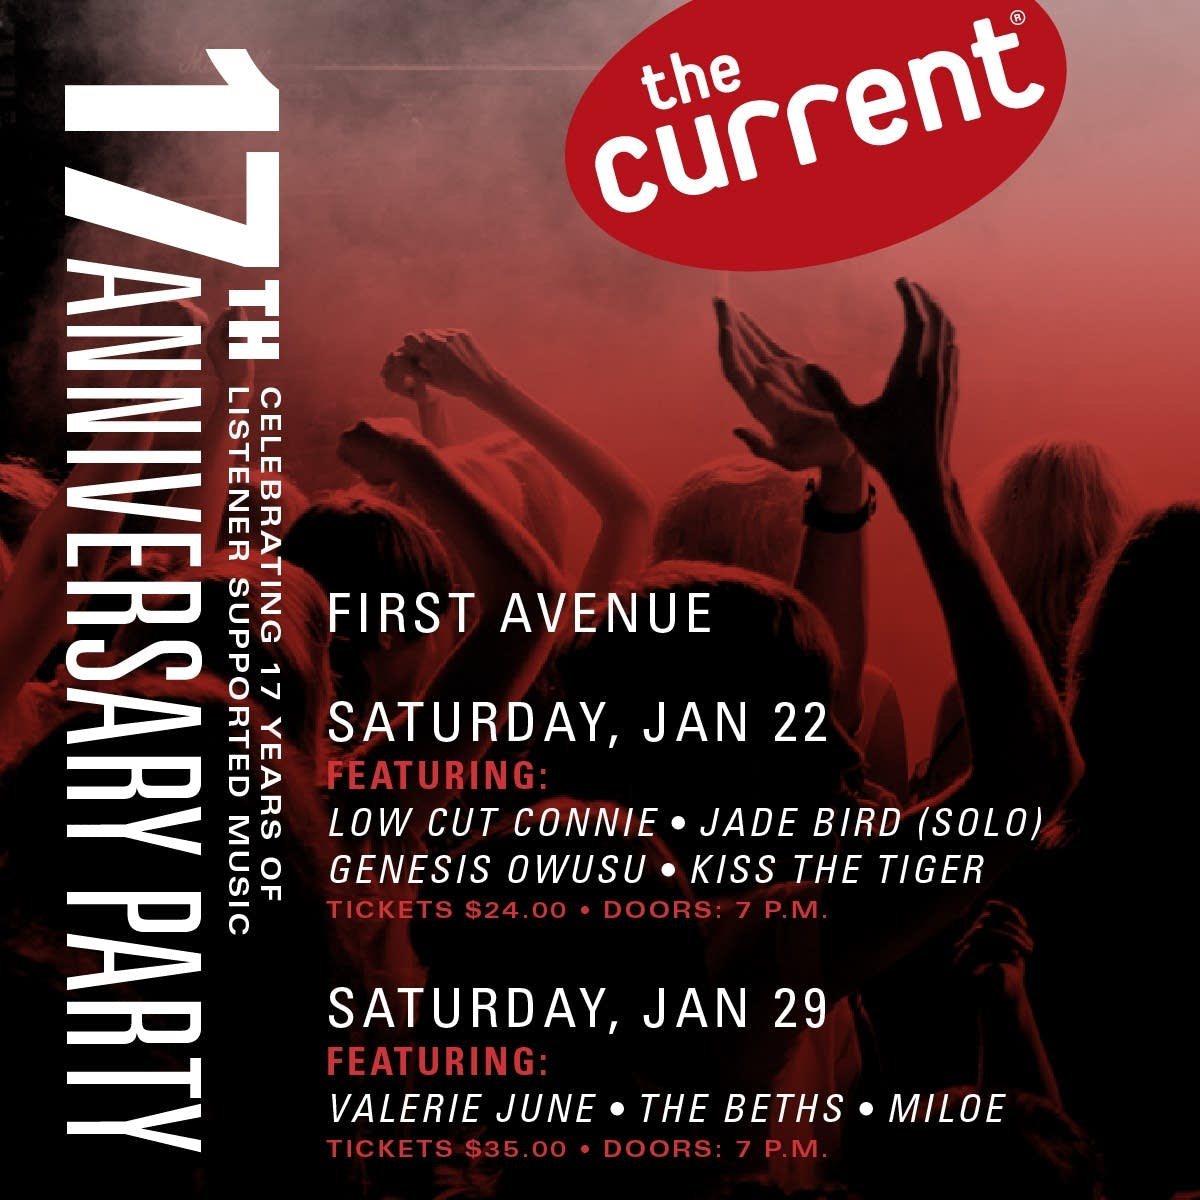 The Current's 17th Anniversary Party graphic - poster with artists